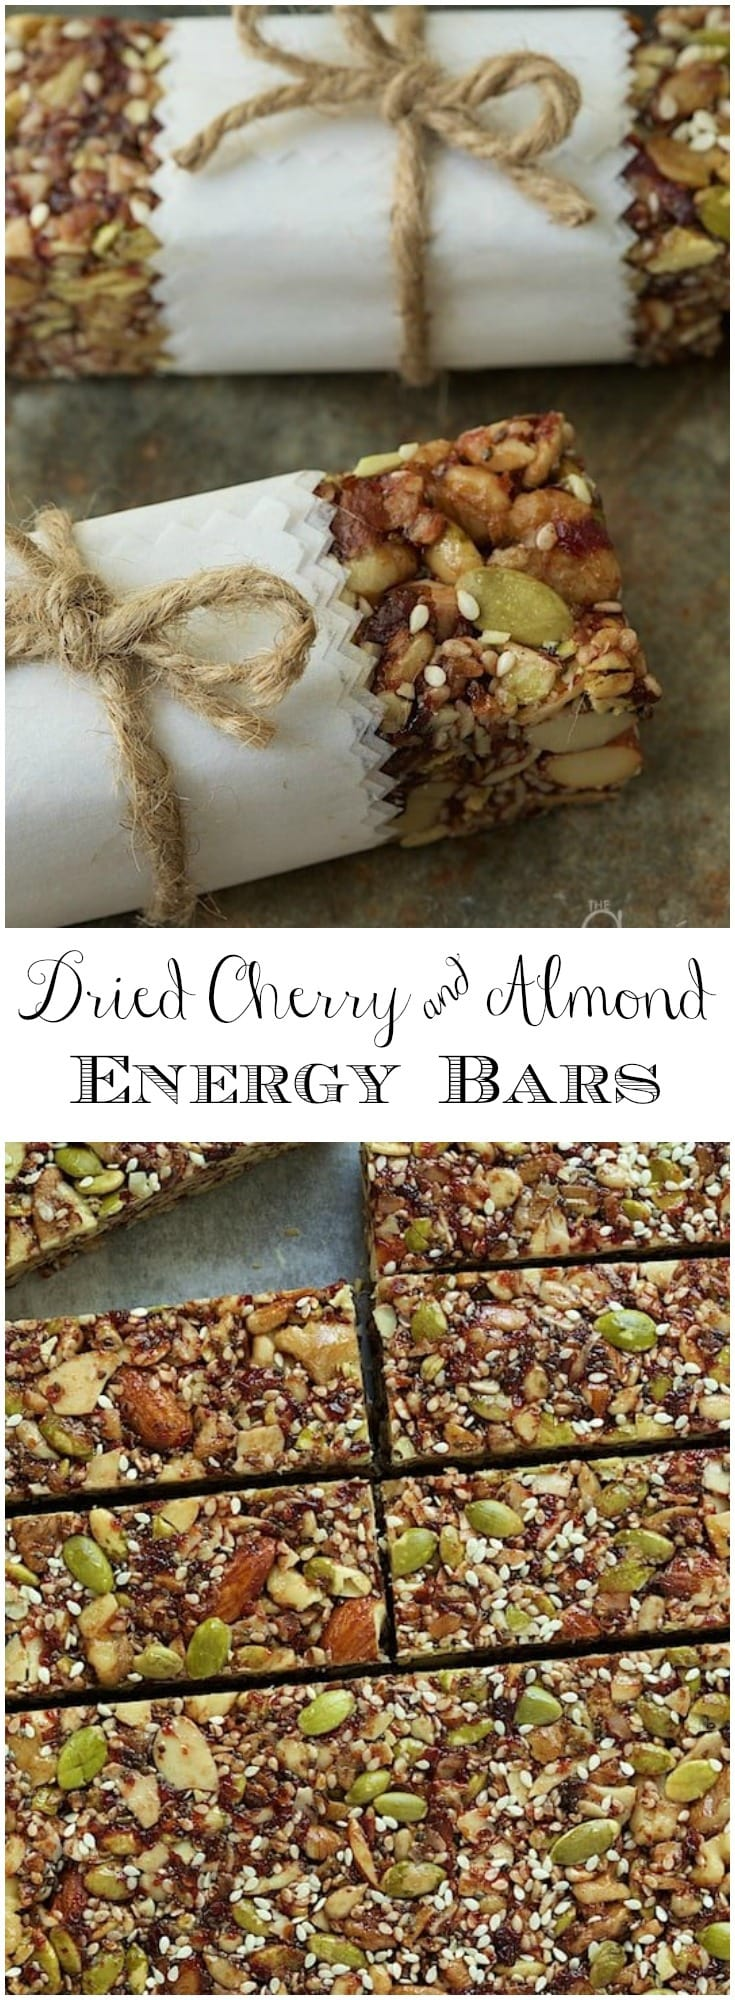 These are crazy good! They're perfect for breakfast, breaks, or anytime you need a super nutritious snack on the run!